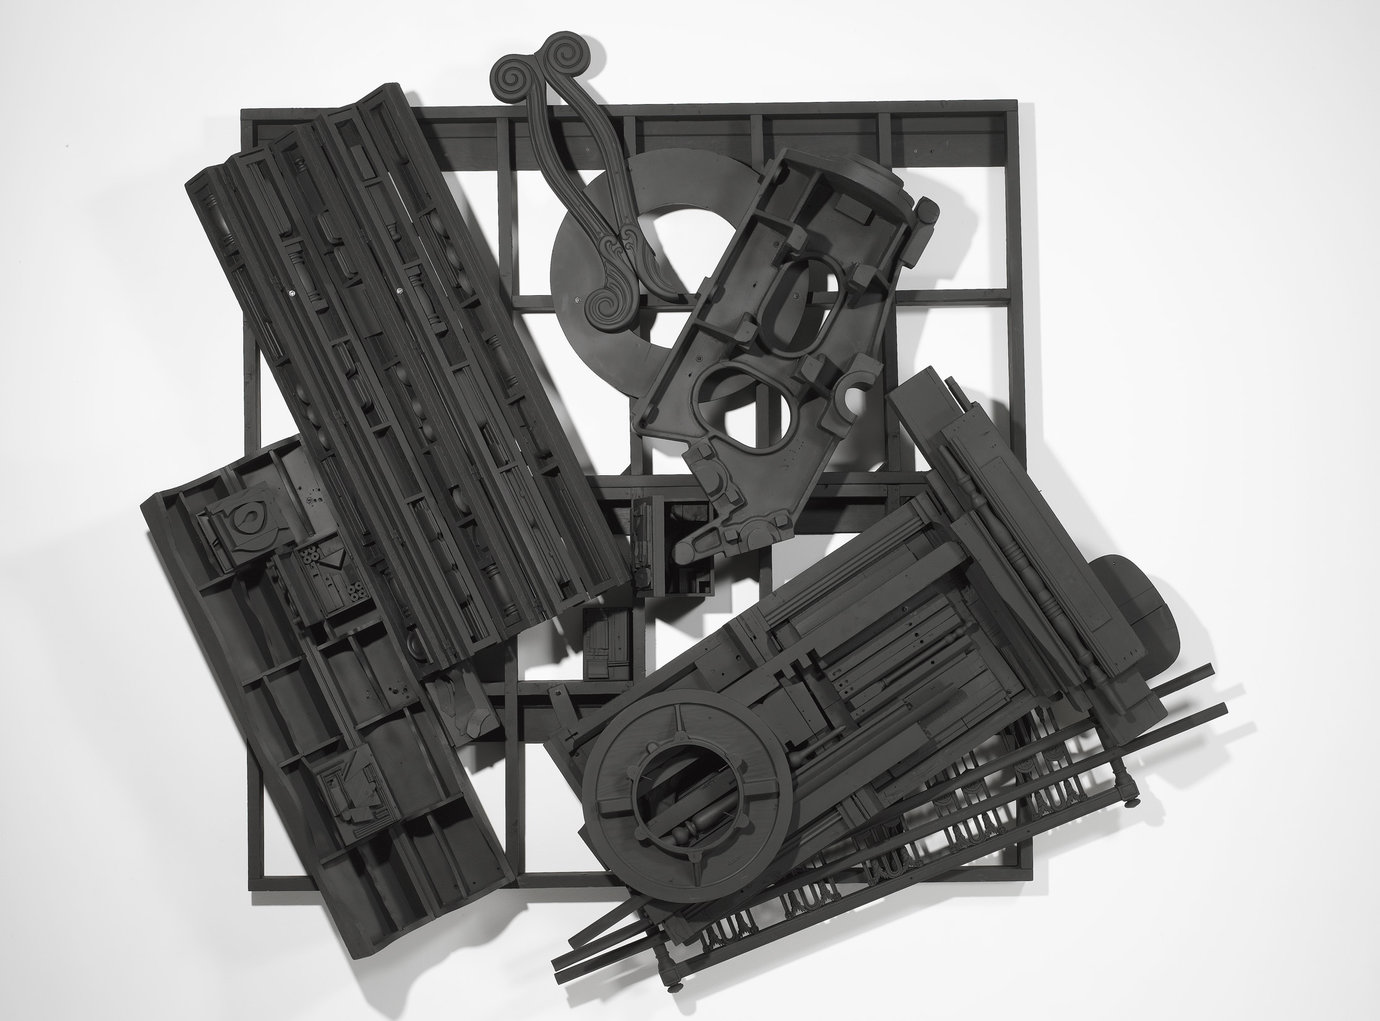 ", 1985. Wood painted black, 9' 9"" x 11' 7"" x 1' 9"" (297.2 cm x 353.1 cm x 53.3 cm)."